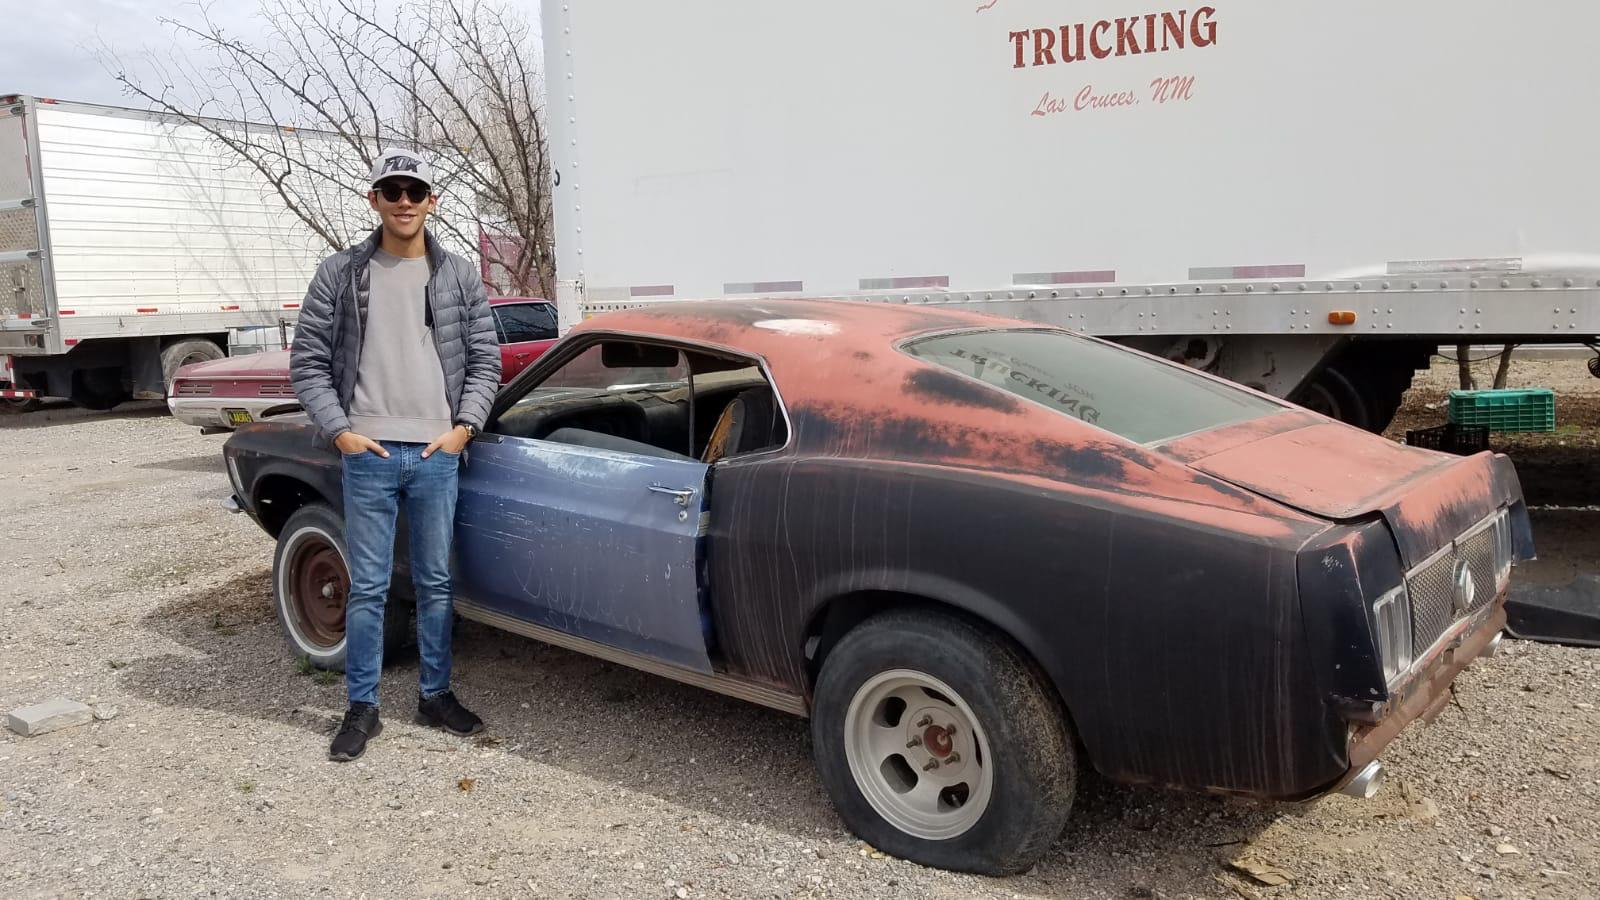 After 10 years of my dad selling his 1970 Mach 1, he bought one again! This project will take around 2 years. The one we used to have was grabber blue with the 351 4V V8, I'm super excited! (Already posted this on another subreddit but still wanted to share with everyone)